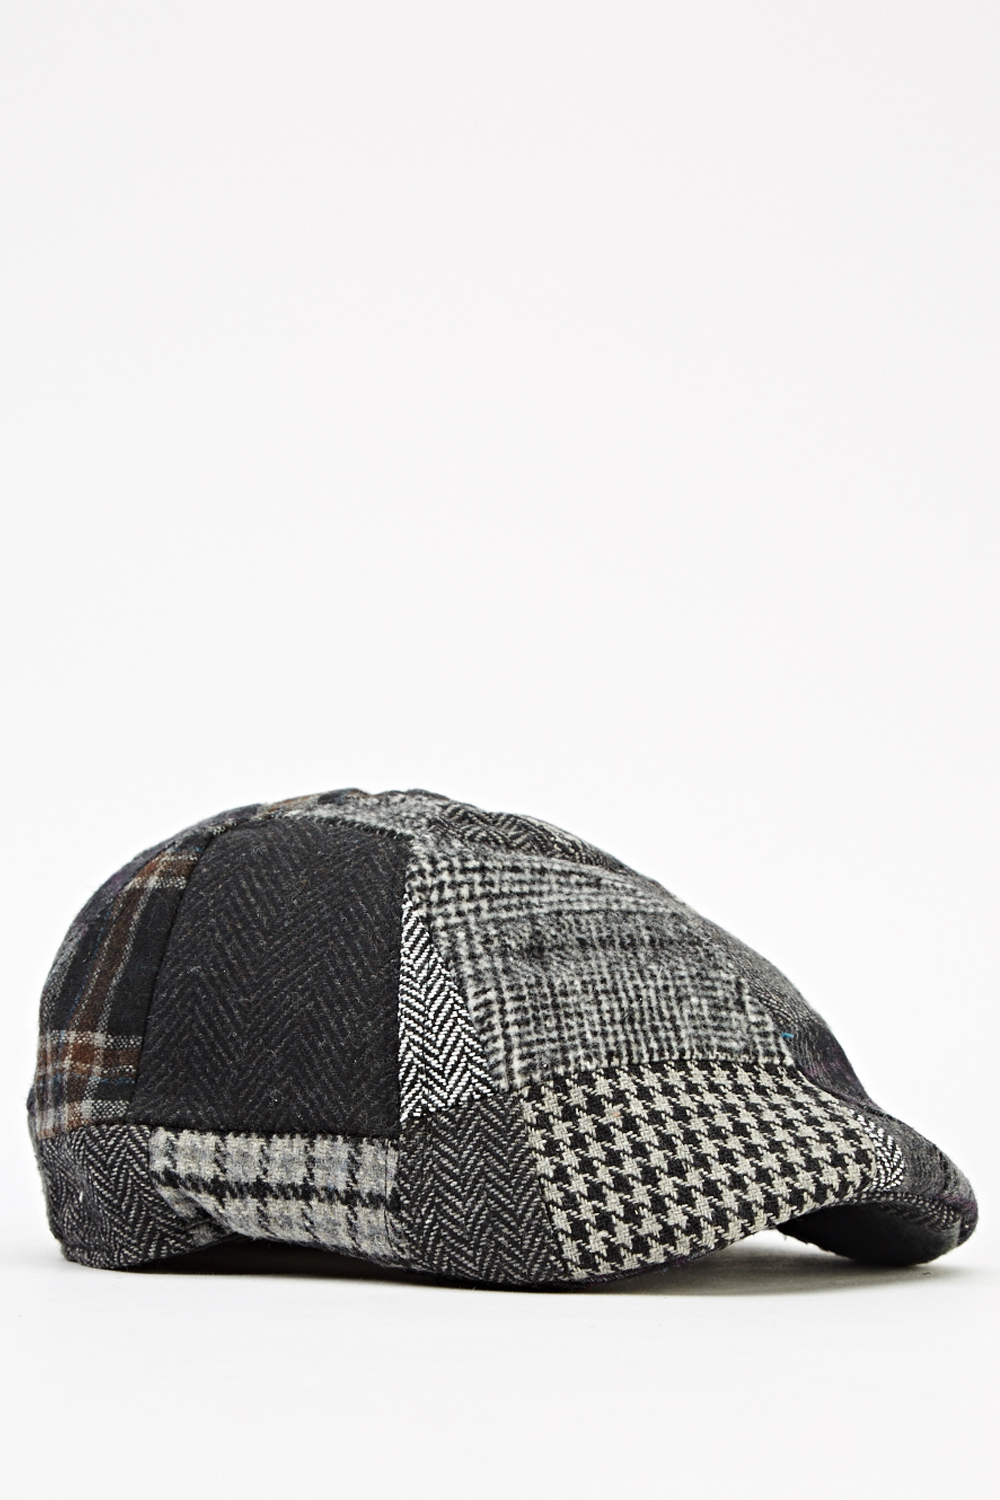 1b5a2f04e981f Mixed Houndstooth Patch Flat Cap - Just £5